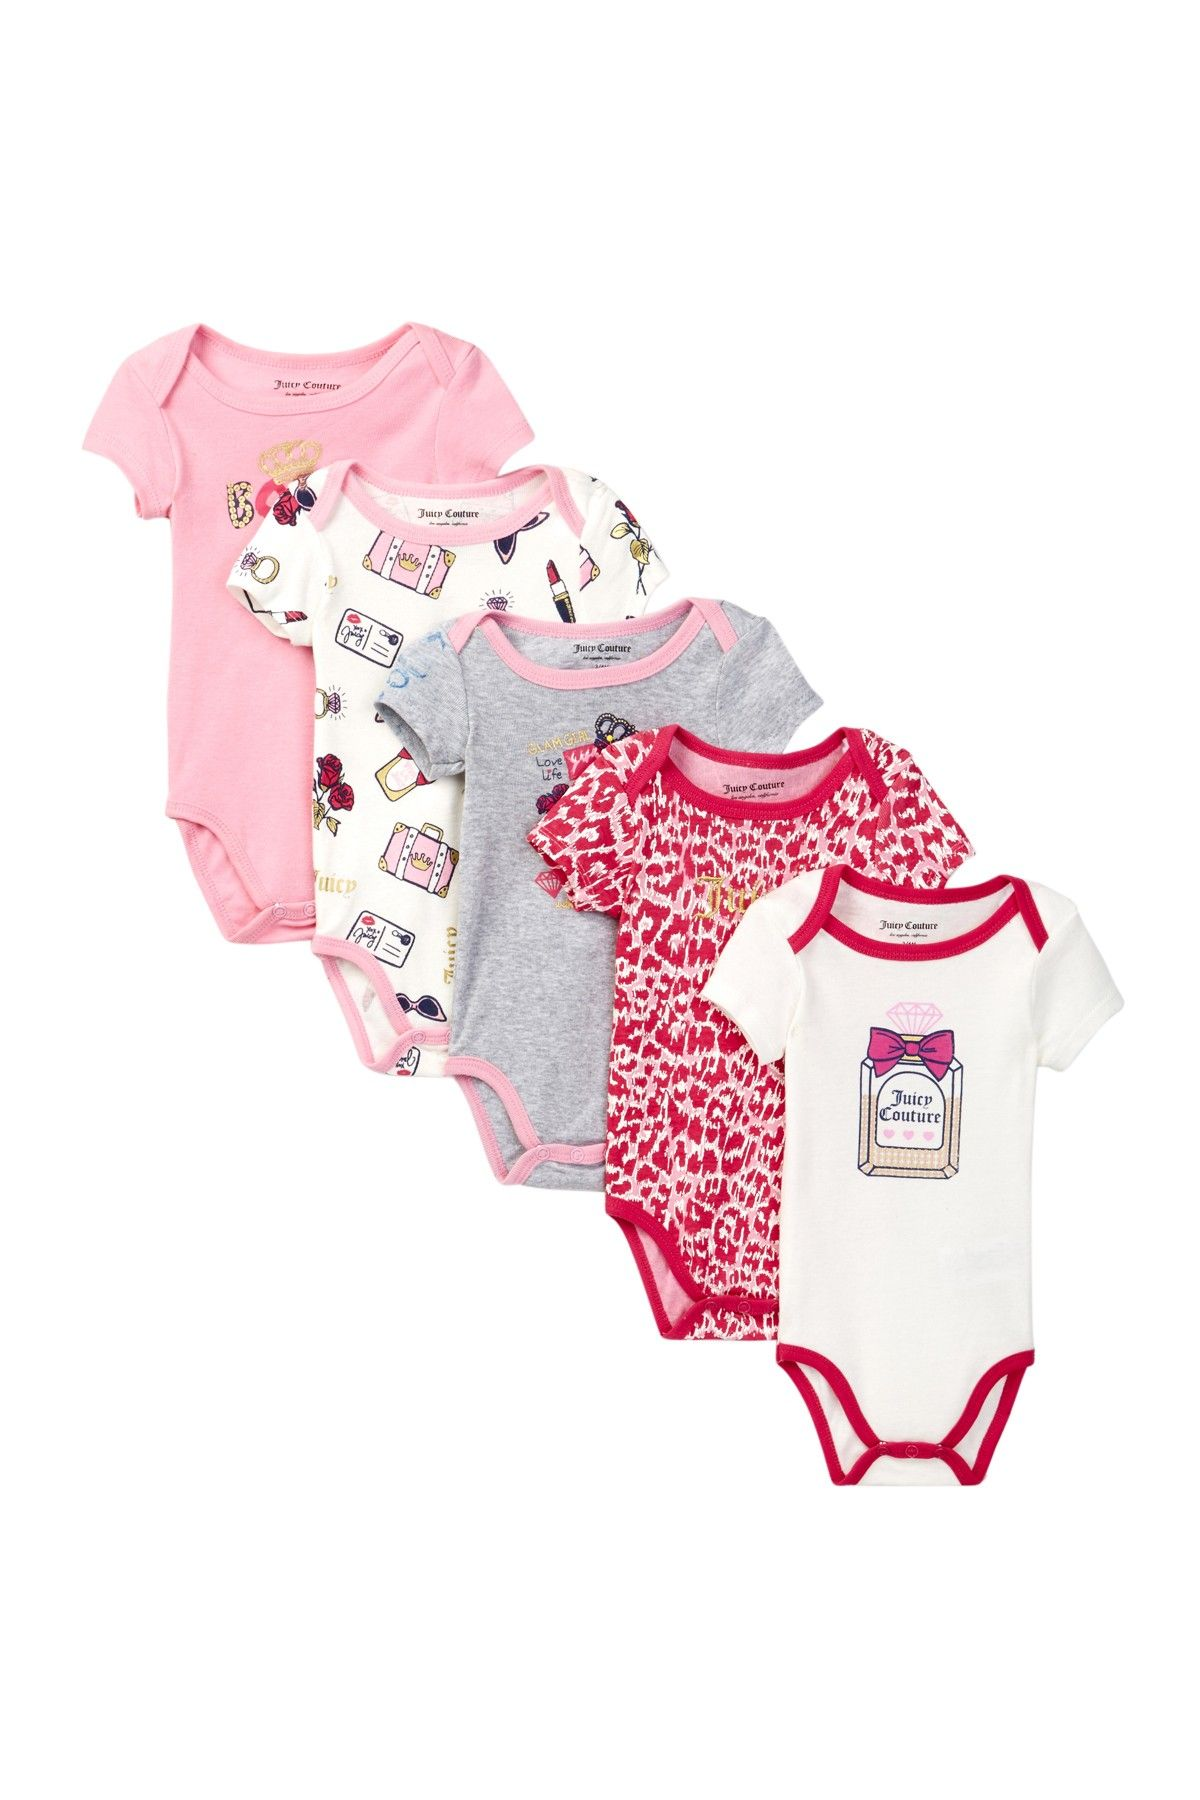 c5c5bfea4 Juicy Princess Bodysuit Set - Pack of 5 (Baby Girls) by Juicy Couture on  @nordstrom_rack